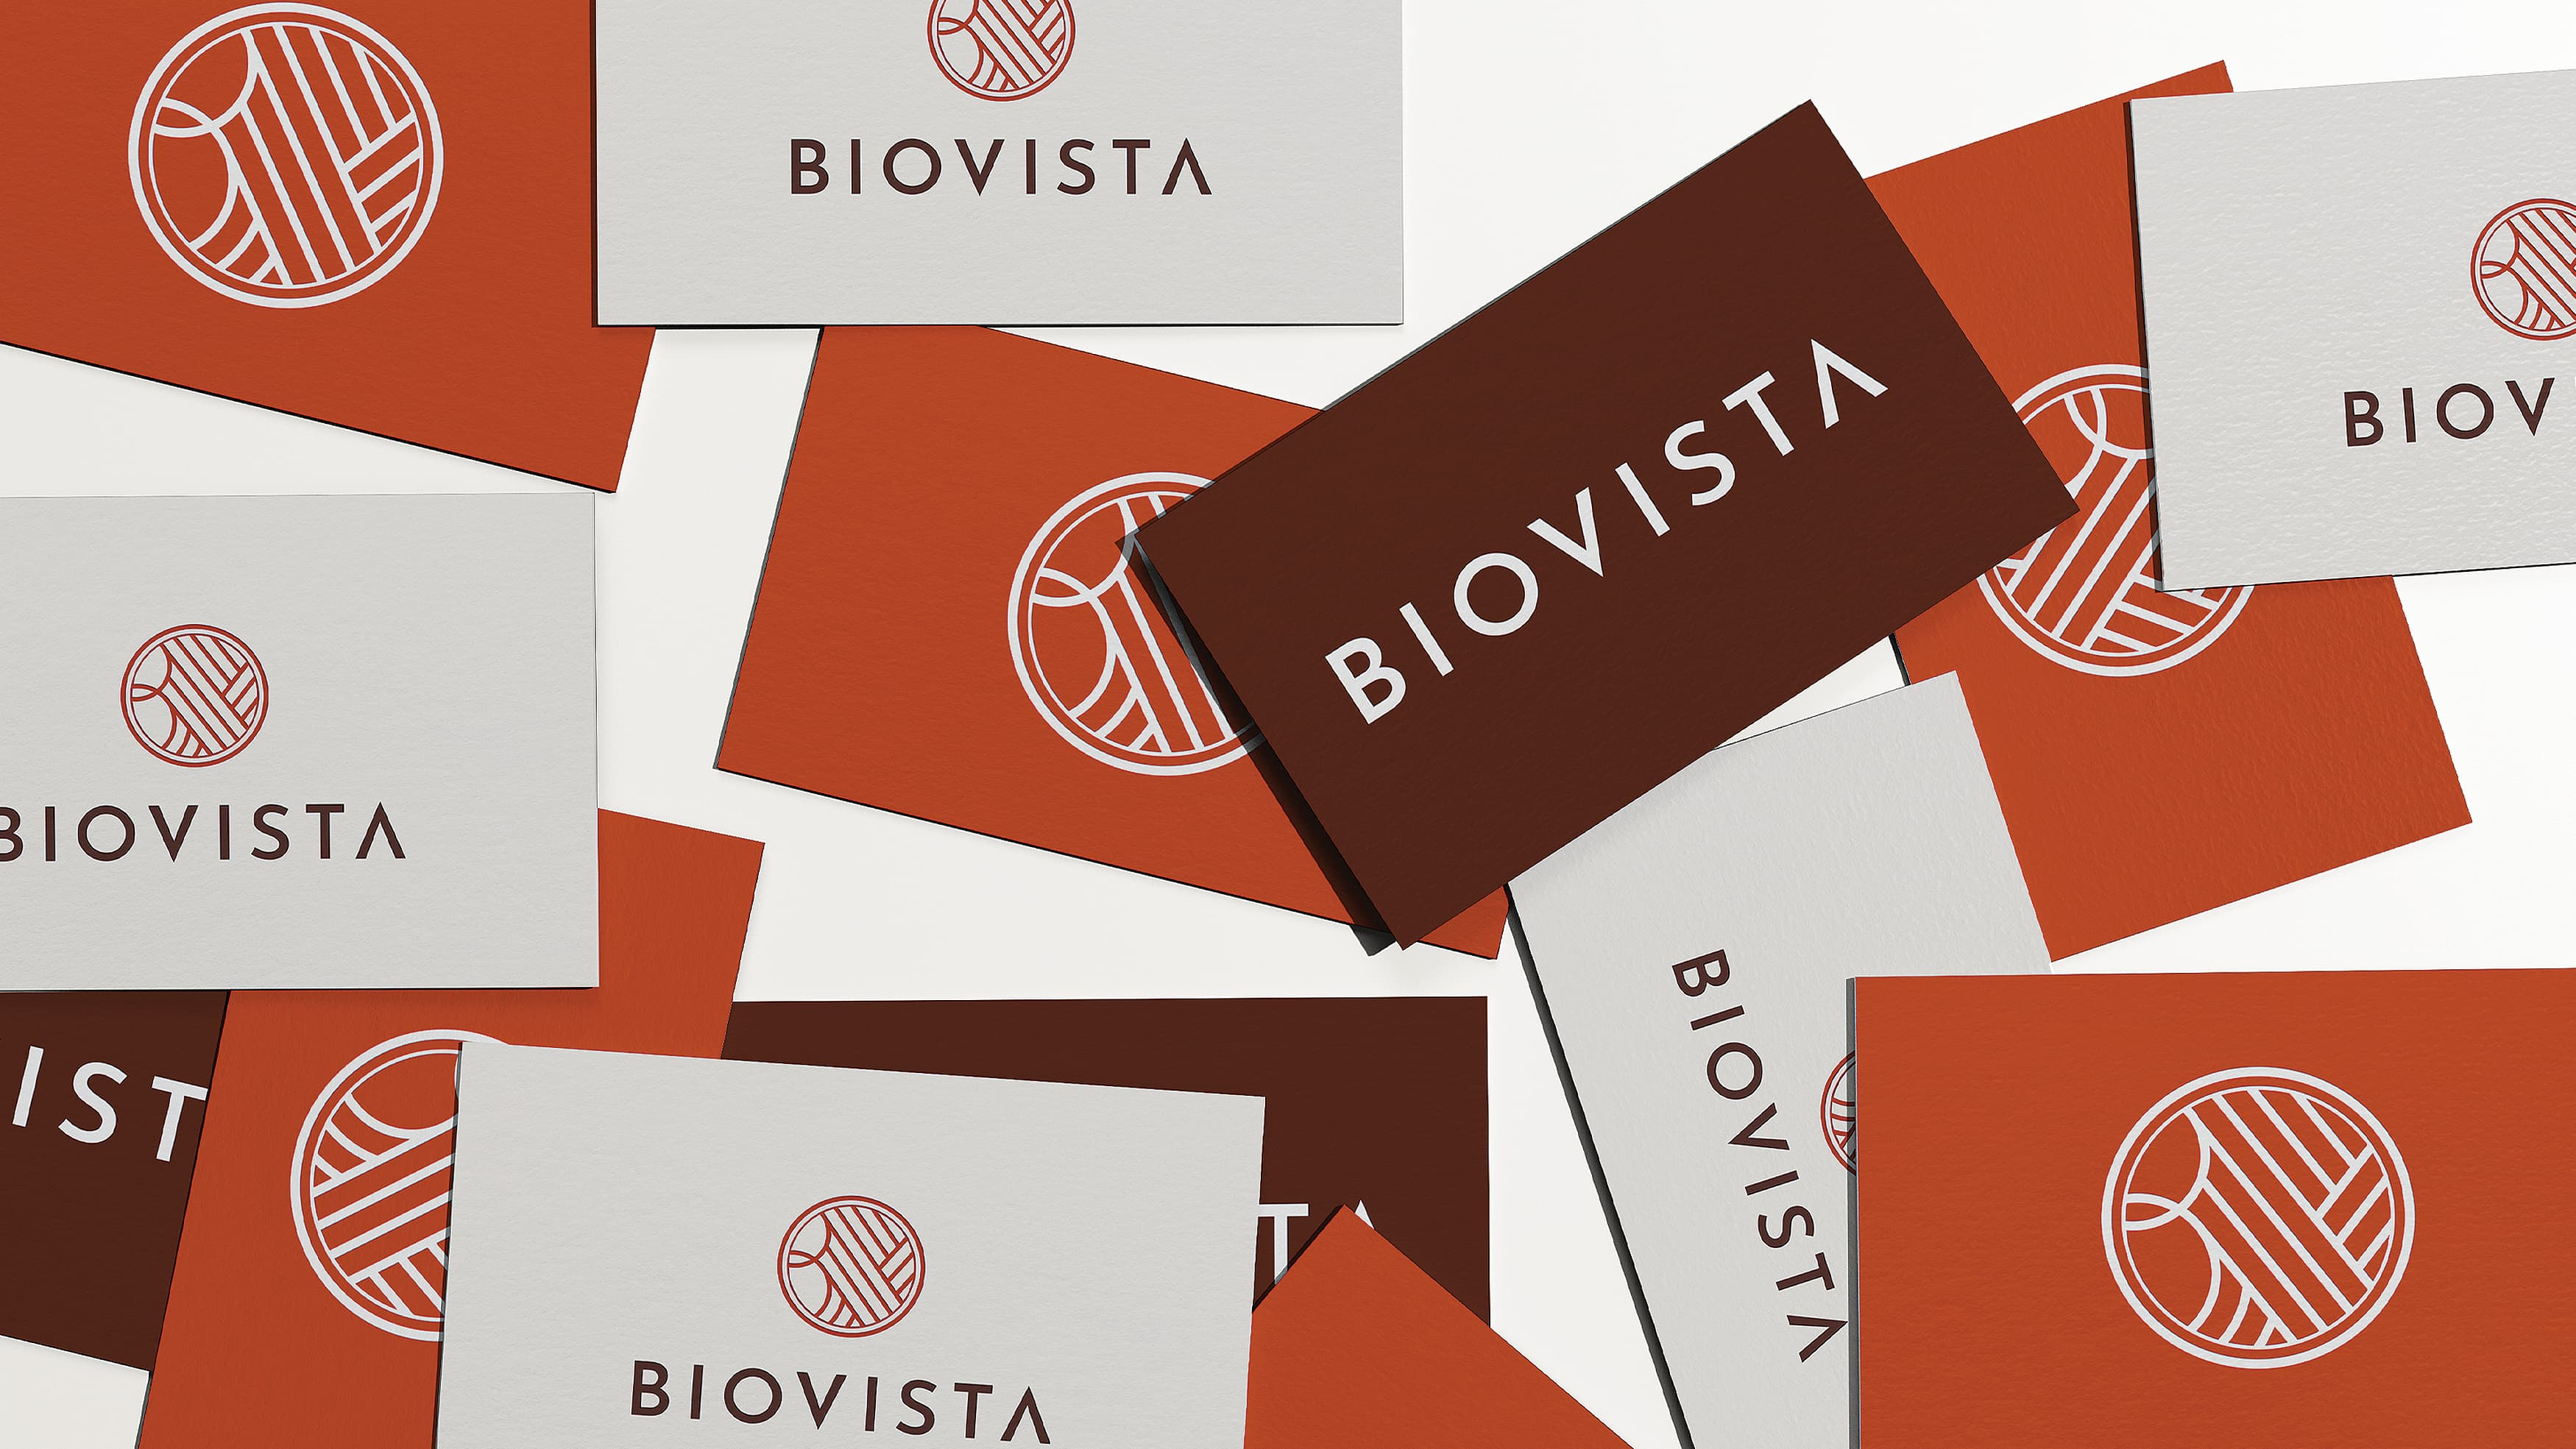 Colorful orange business cards spread across a table with the Biovista logo on them.